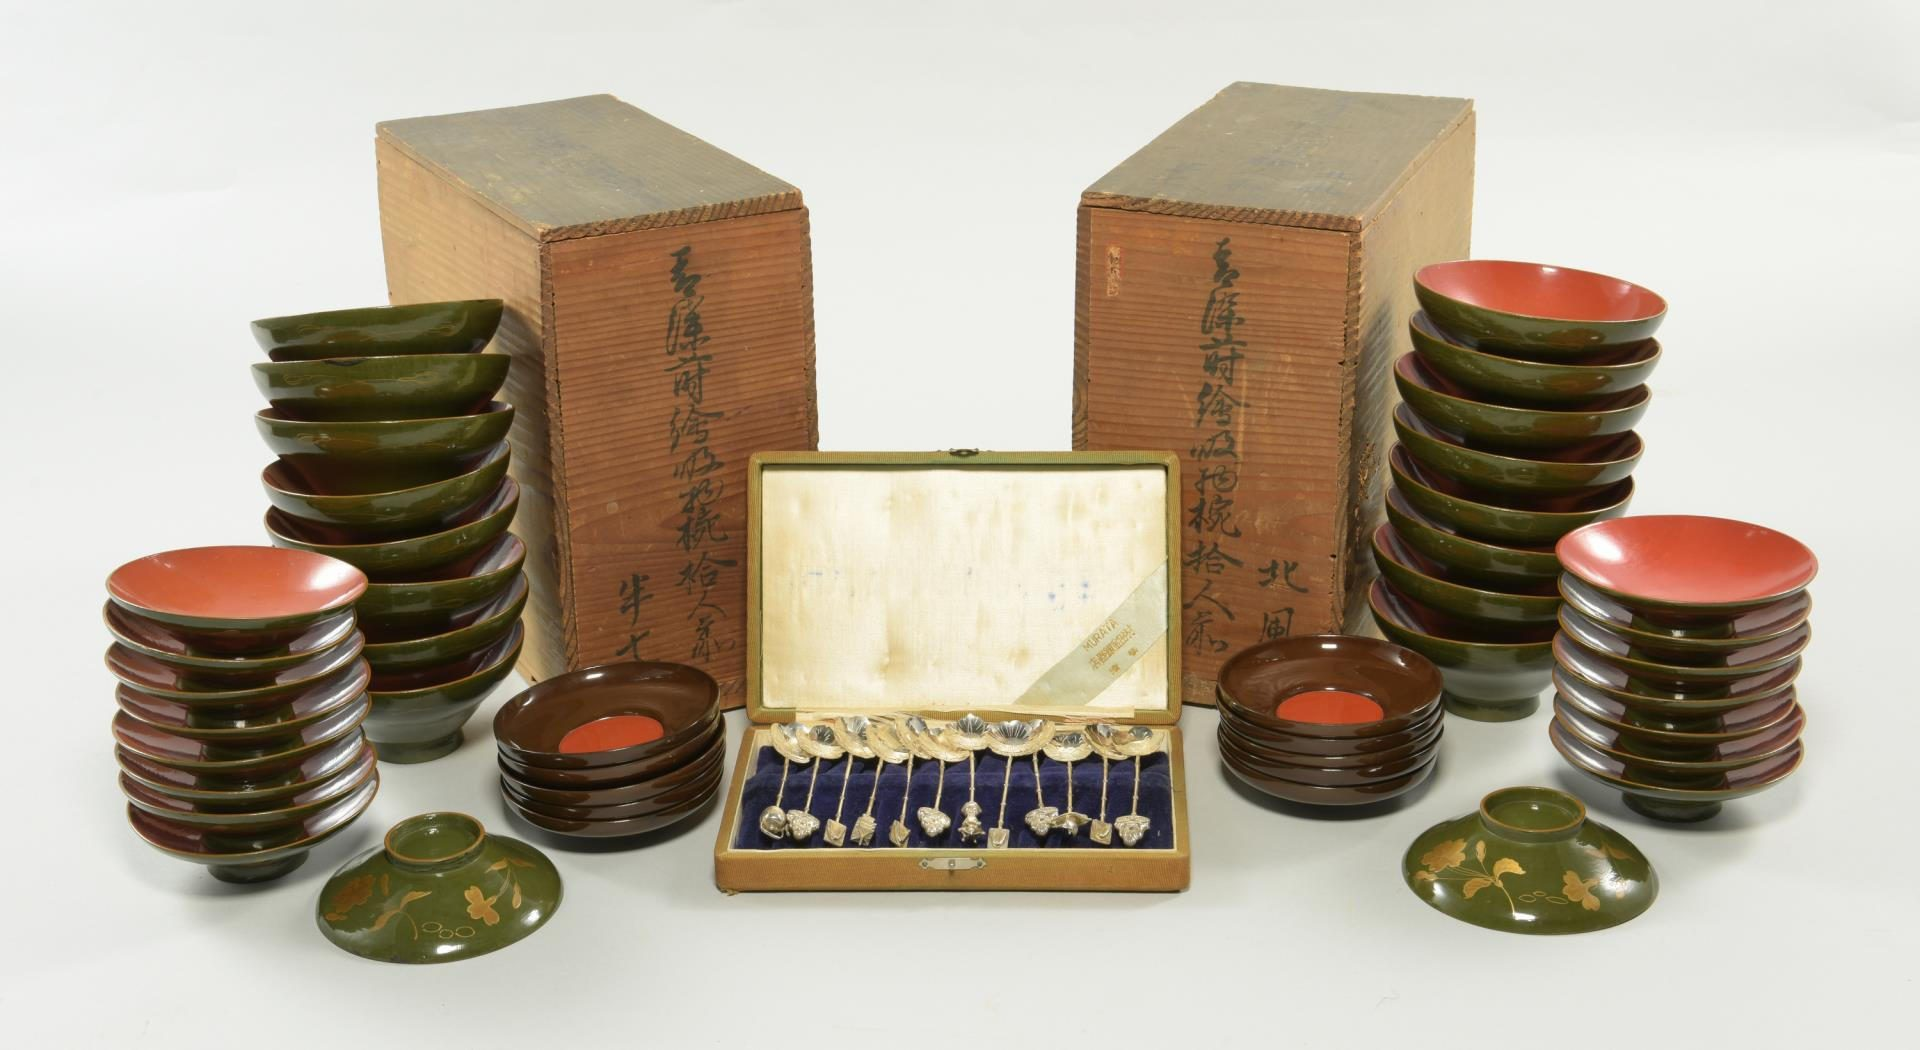 Lot 127: 2 Boxed Sets of Japanese Lacquerware & Asian Demitasse Sterling Silver Spoons